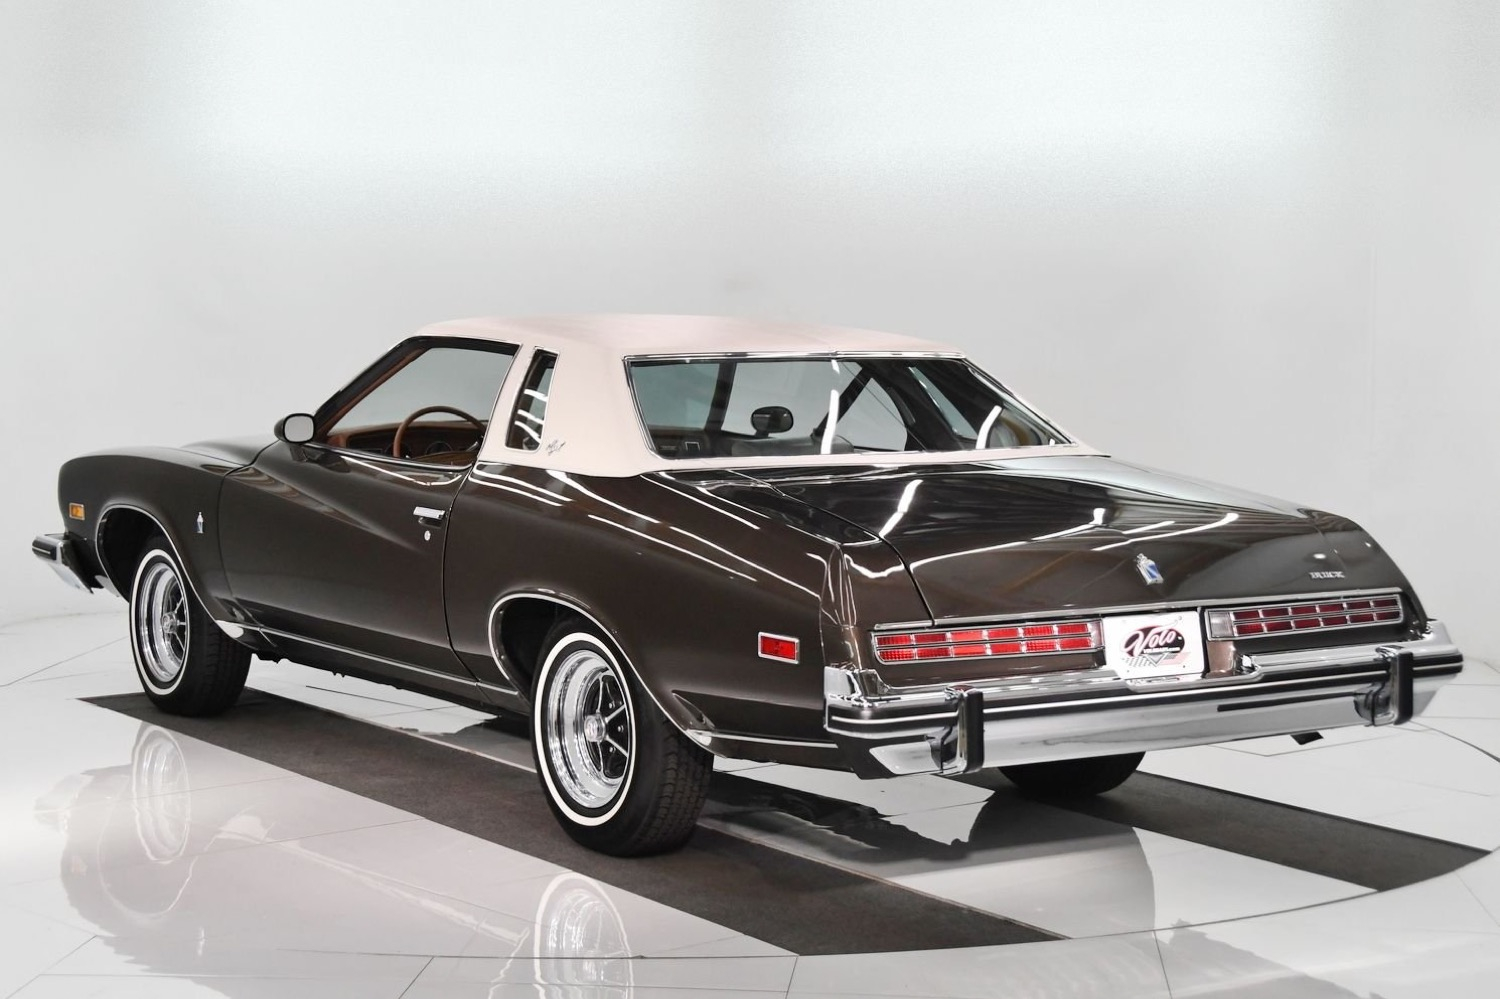 1975 Buick Regal Colonnade Up For Sale In Illinois: Video 2022 Buick Regal Brochure, Build, Models